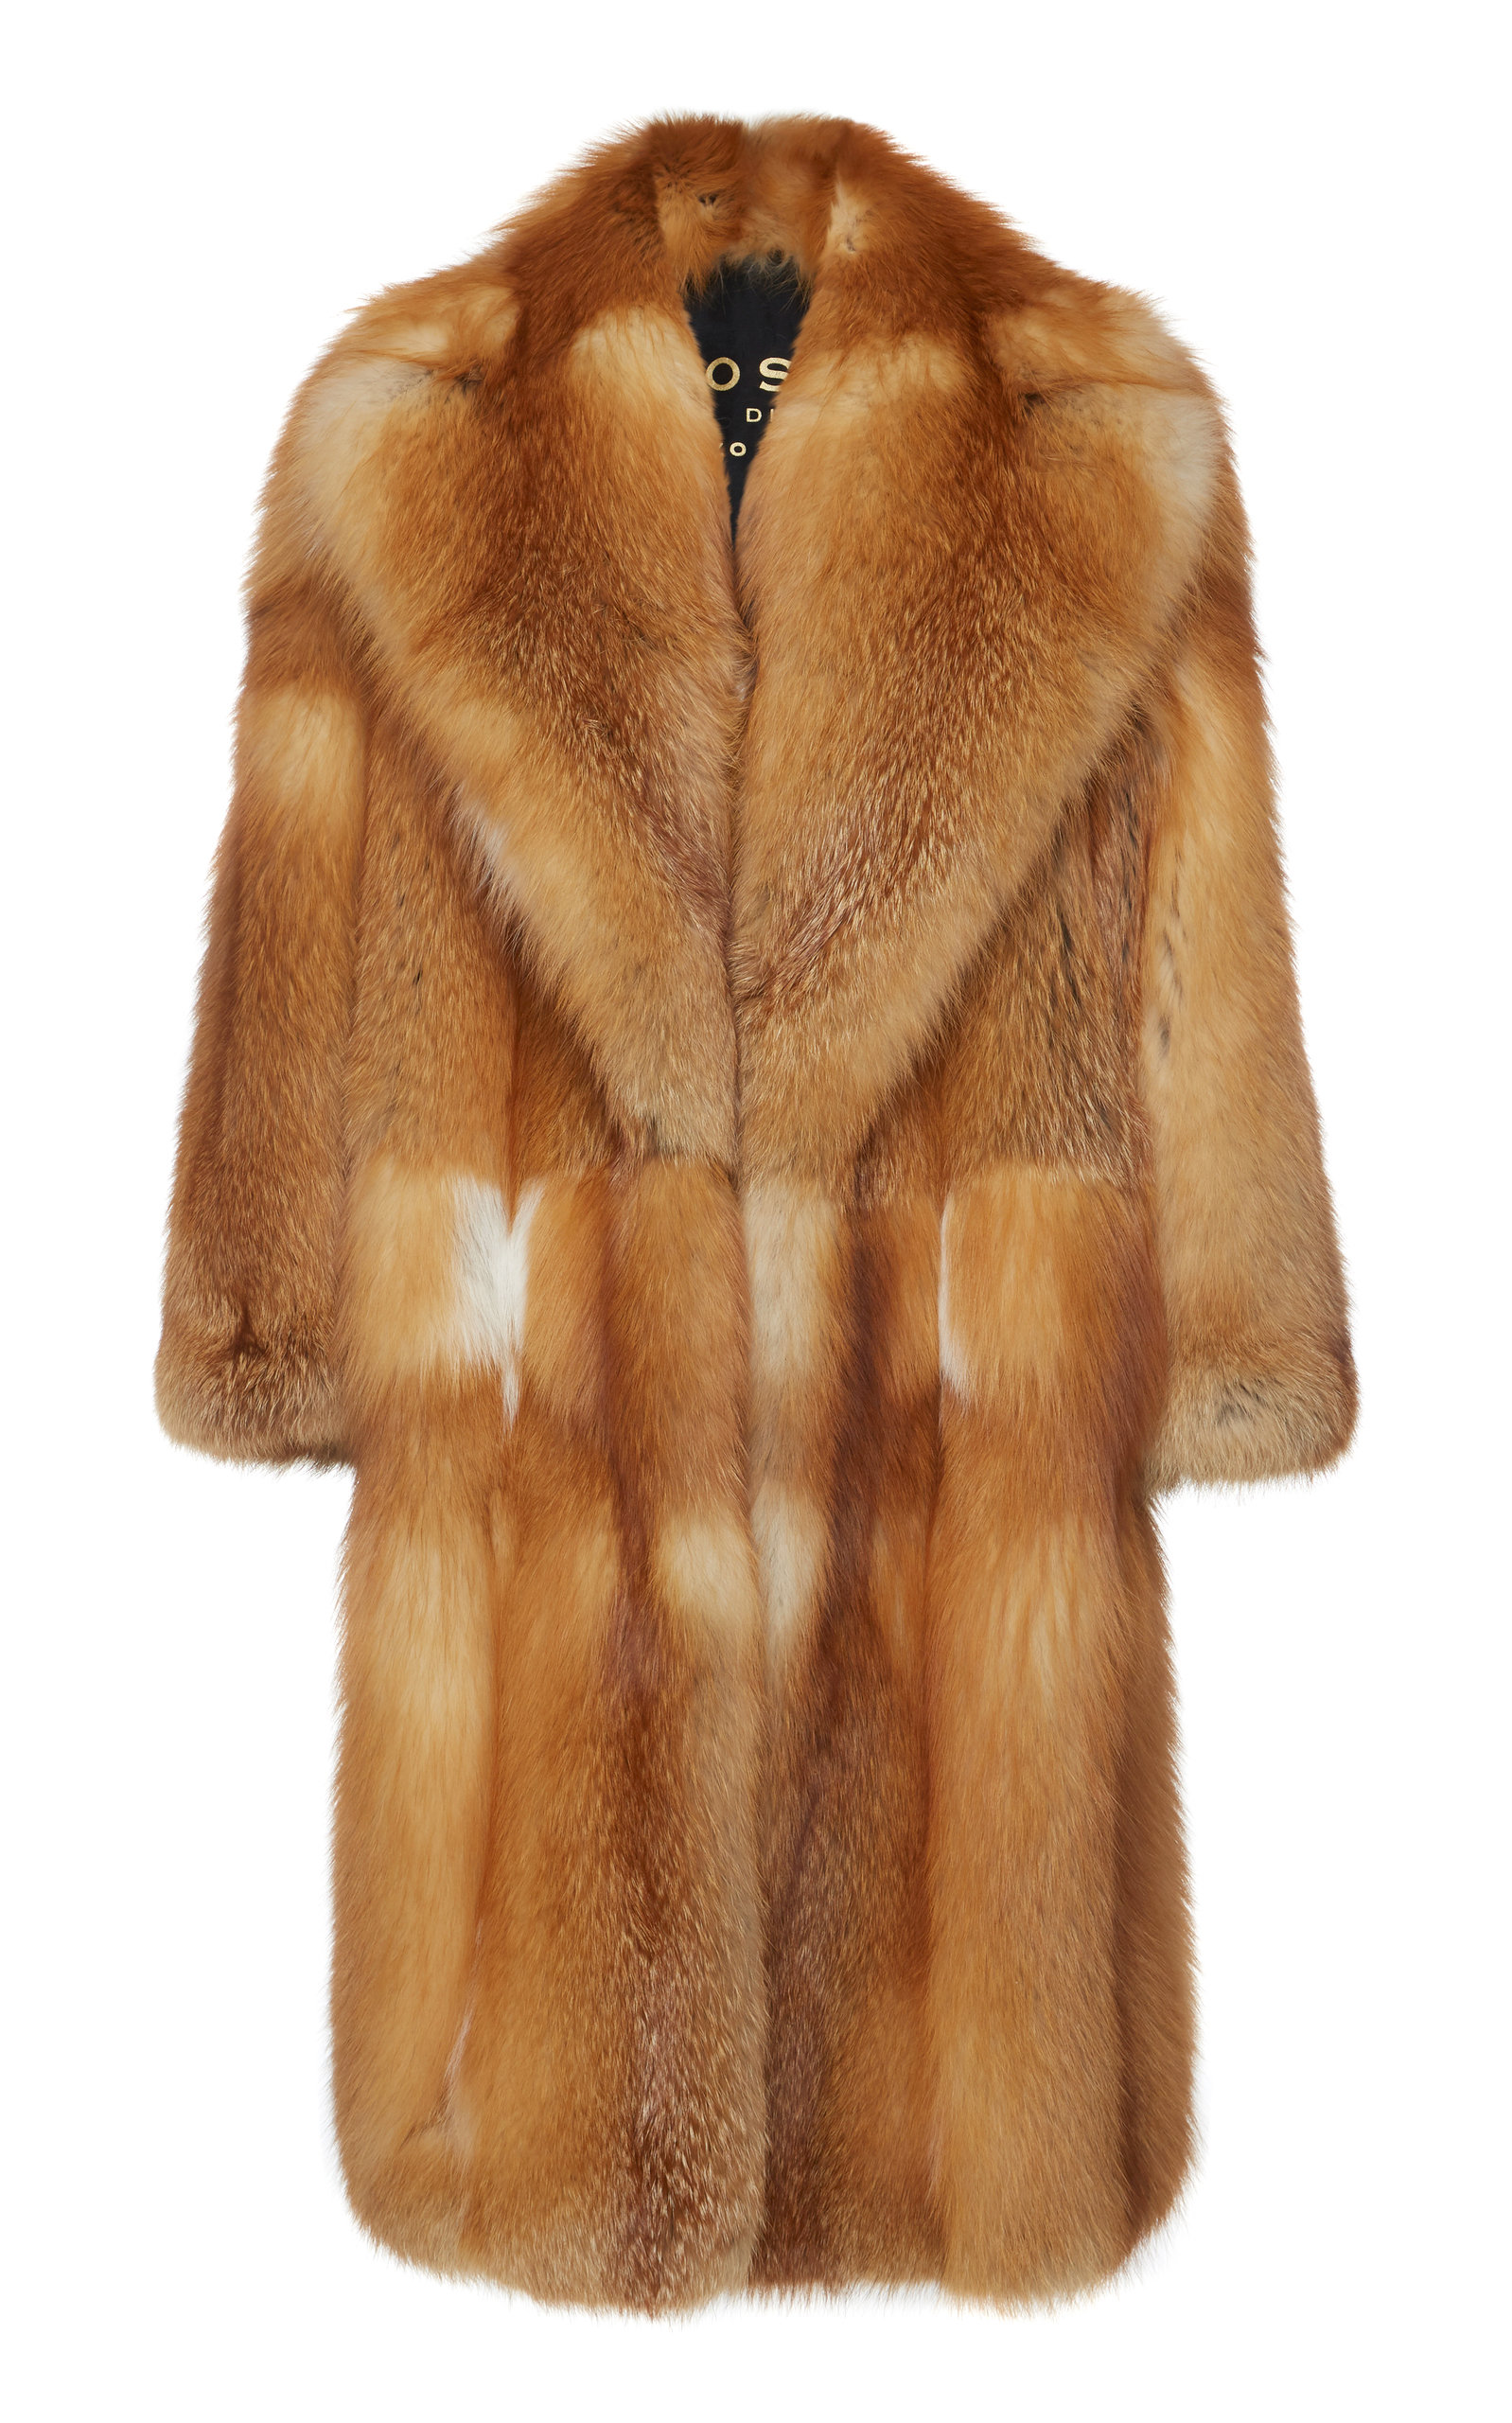 Loading. Loading. Loading. FULL SCREEN. Click Product to Zoom. Philosophy  di Lorenzo SerafiniFox Fur Coat. No Longer Available